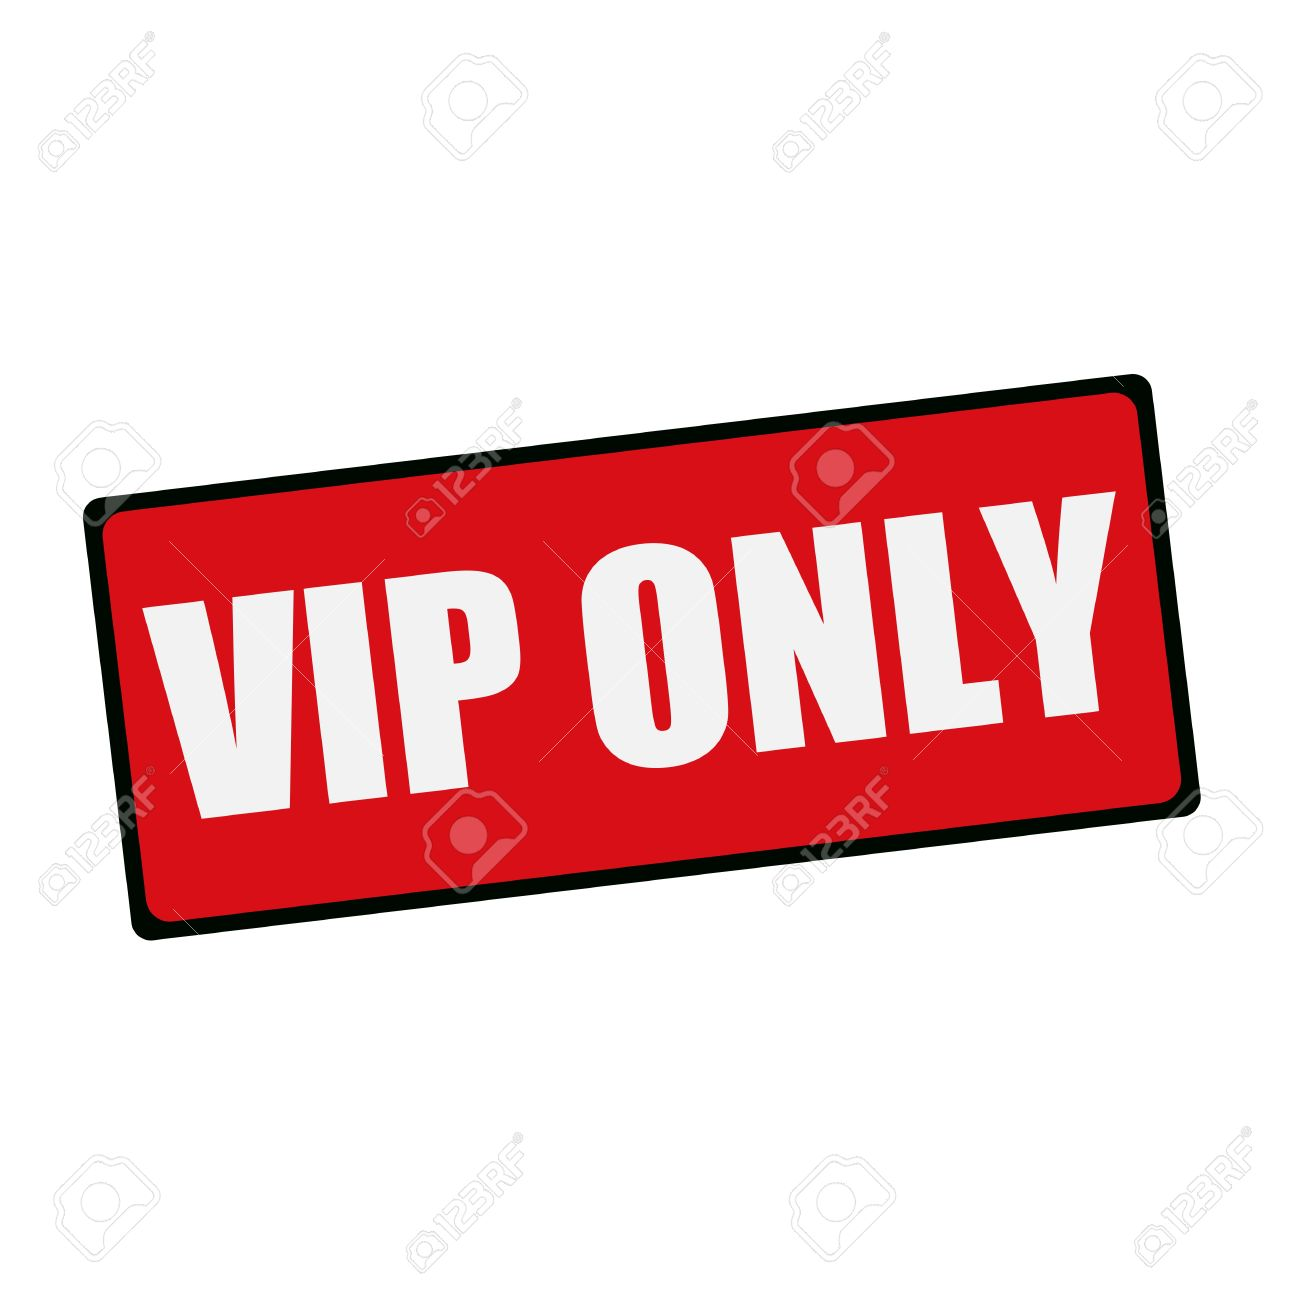 vip only wording on rectangular signs stock photo picture and